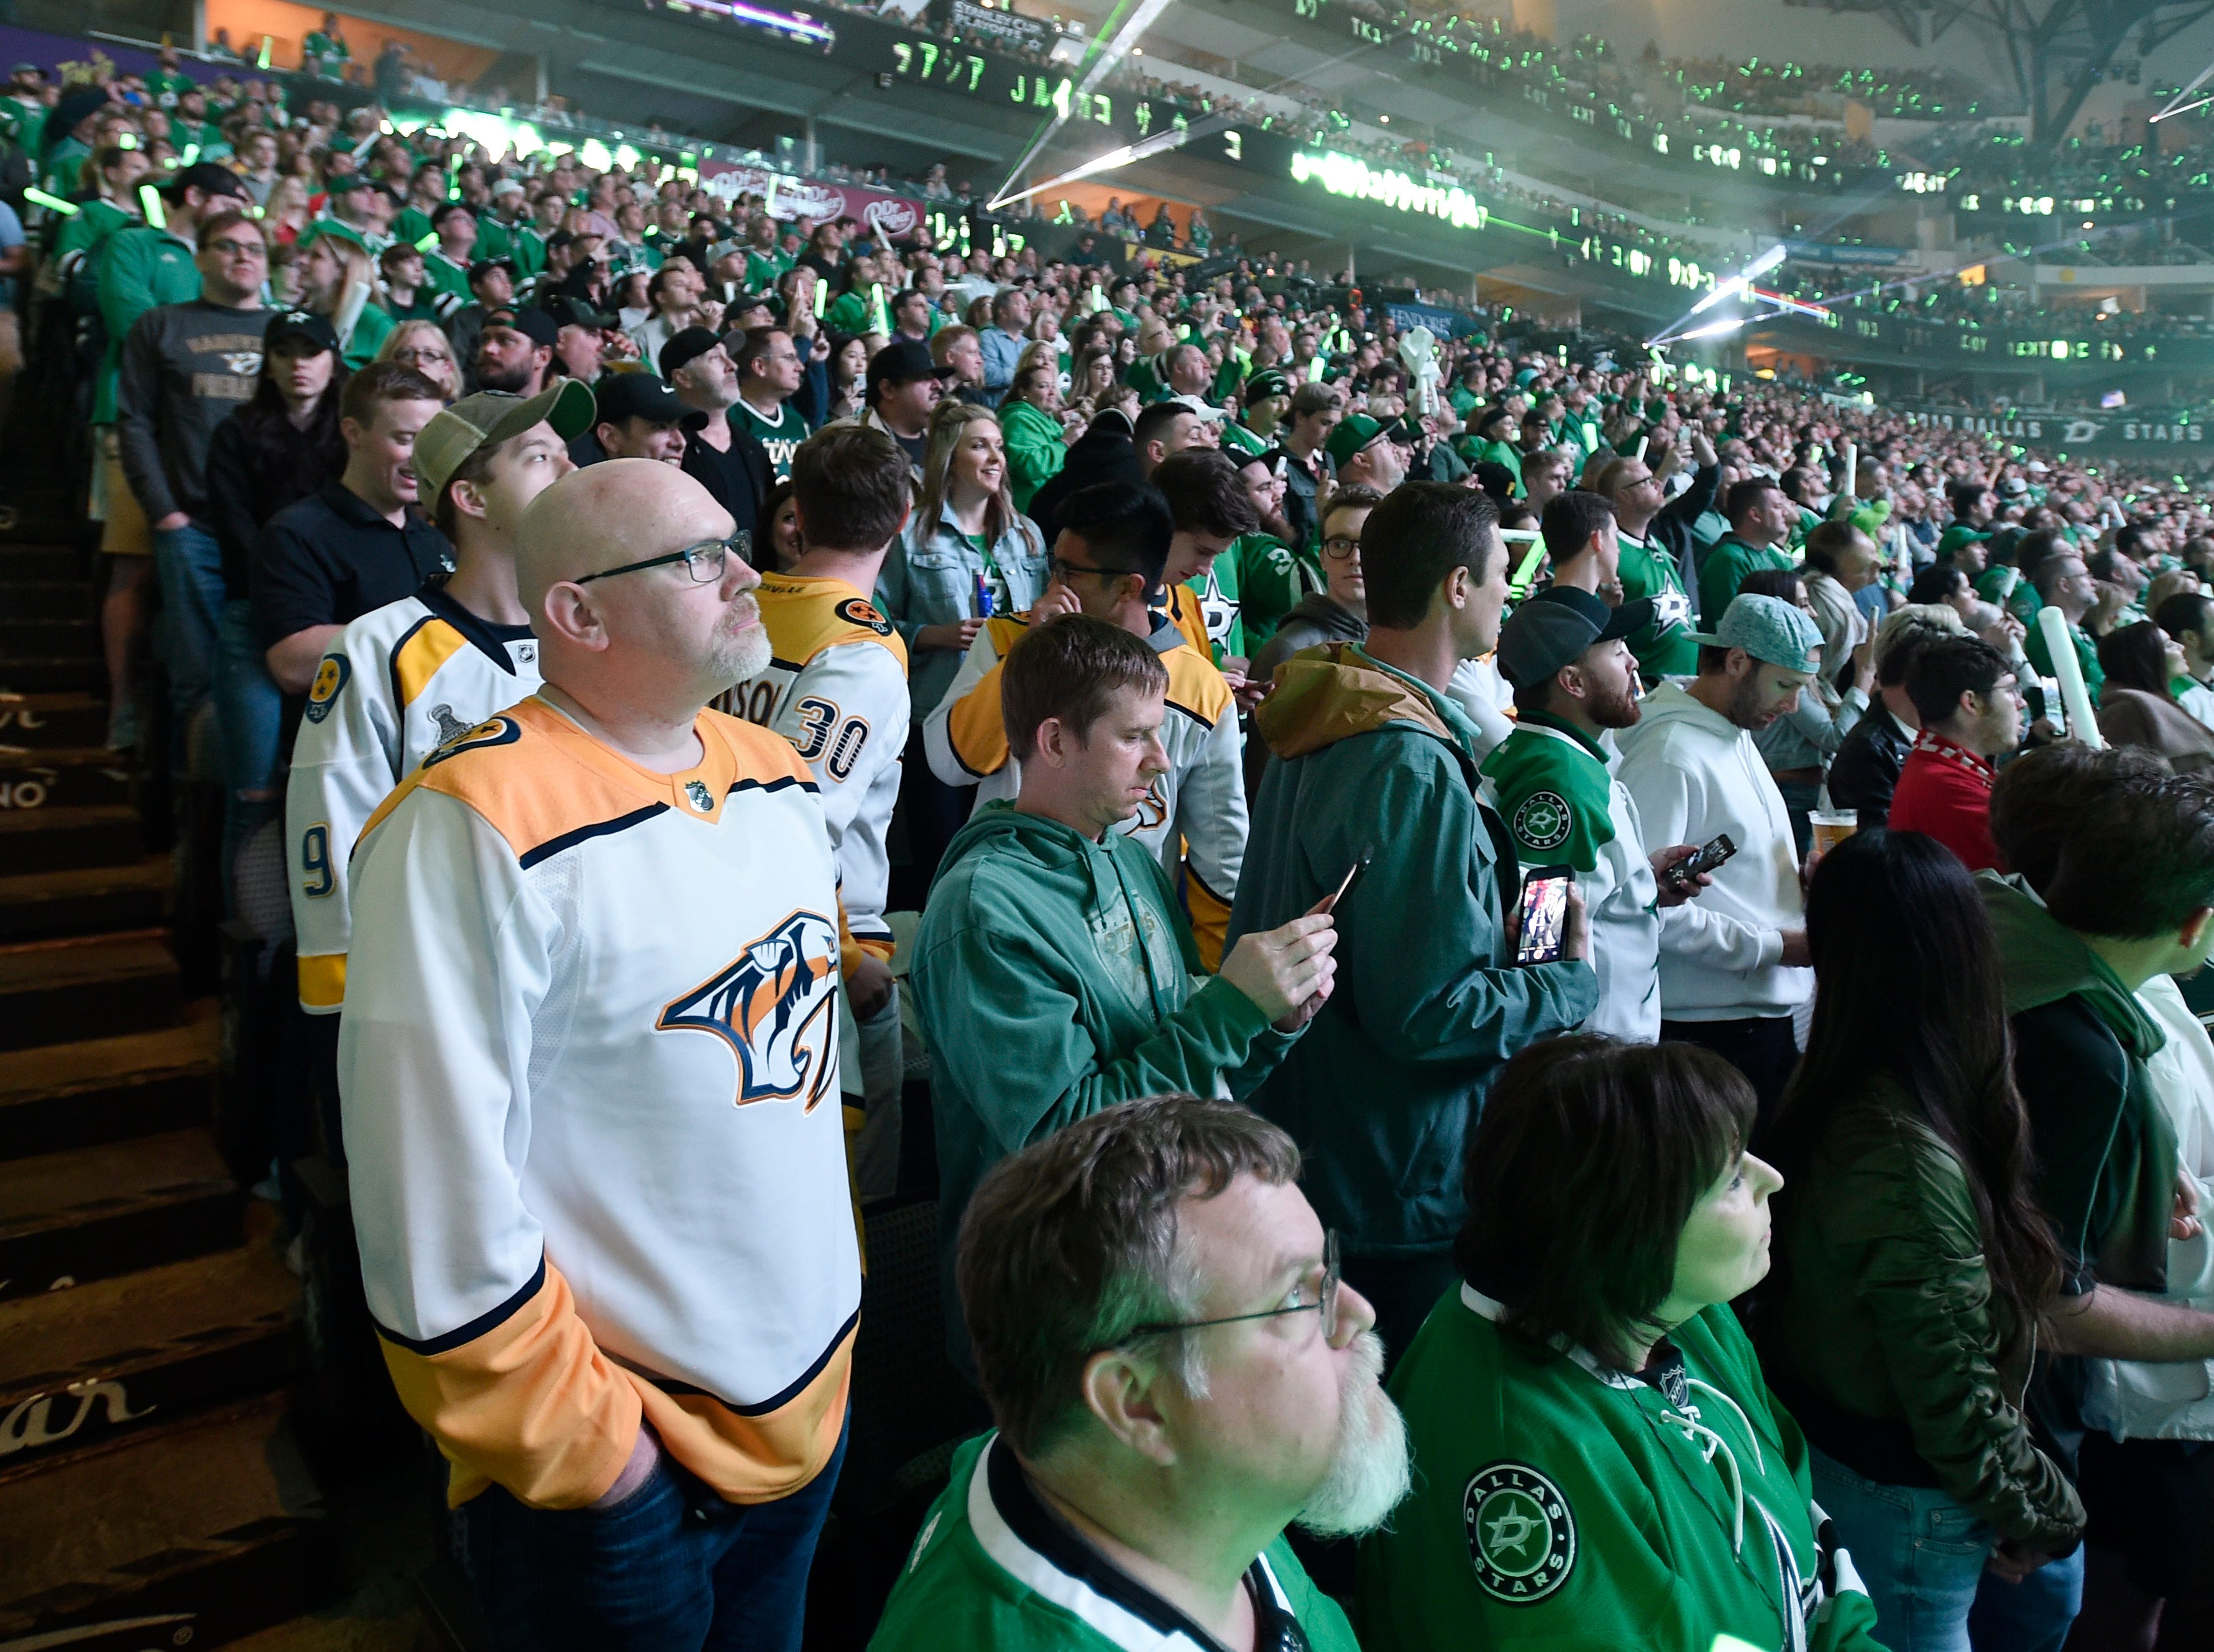 Predators fans surrounded by Stars fans wait for the start of the divisional semifinal game at the American Airlines Center in Dallas, Texas., Monday, April 15, 2019.